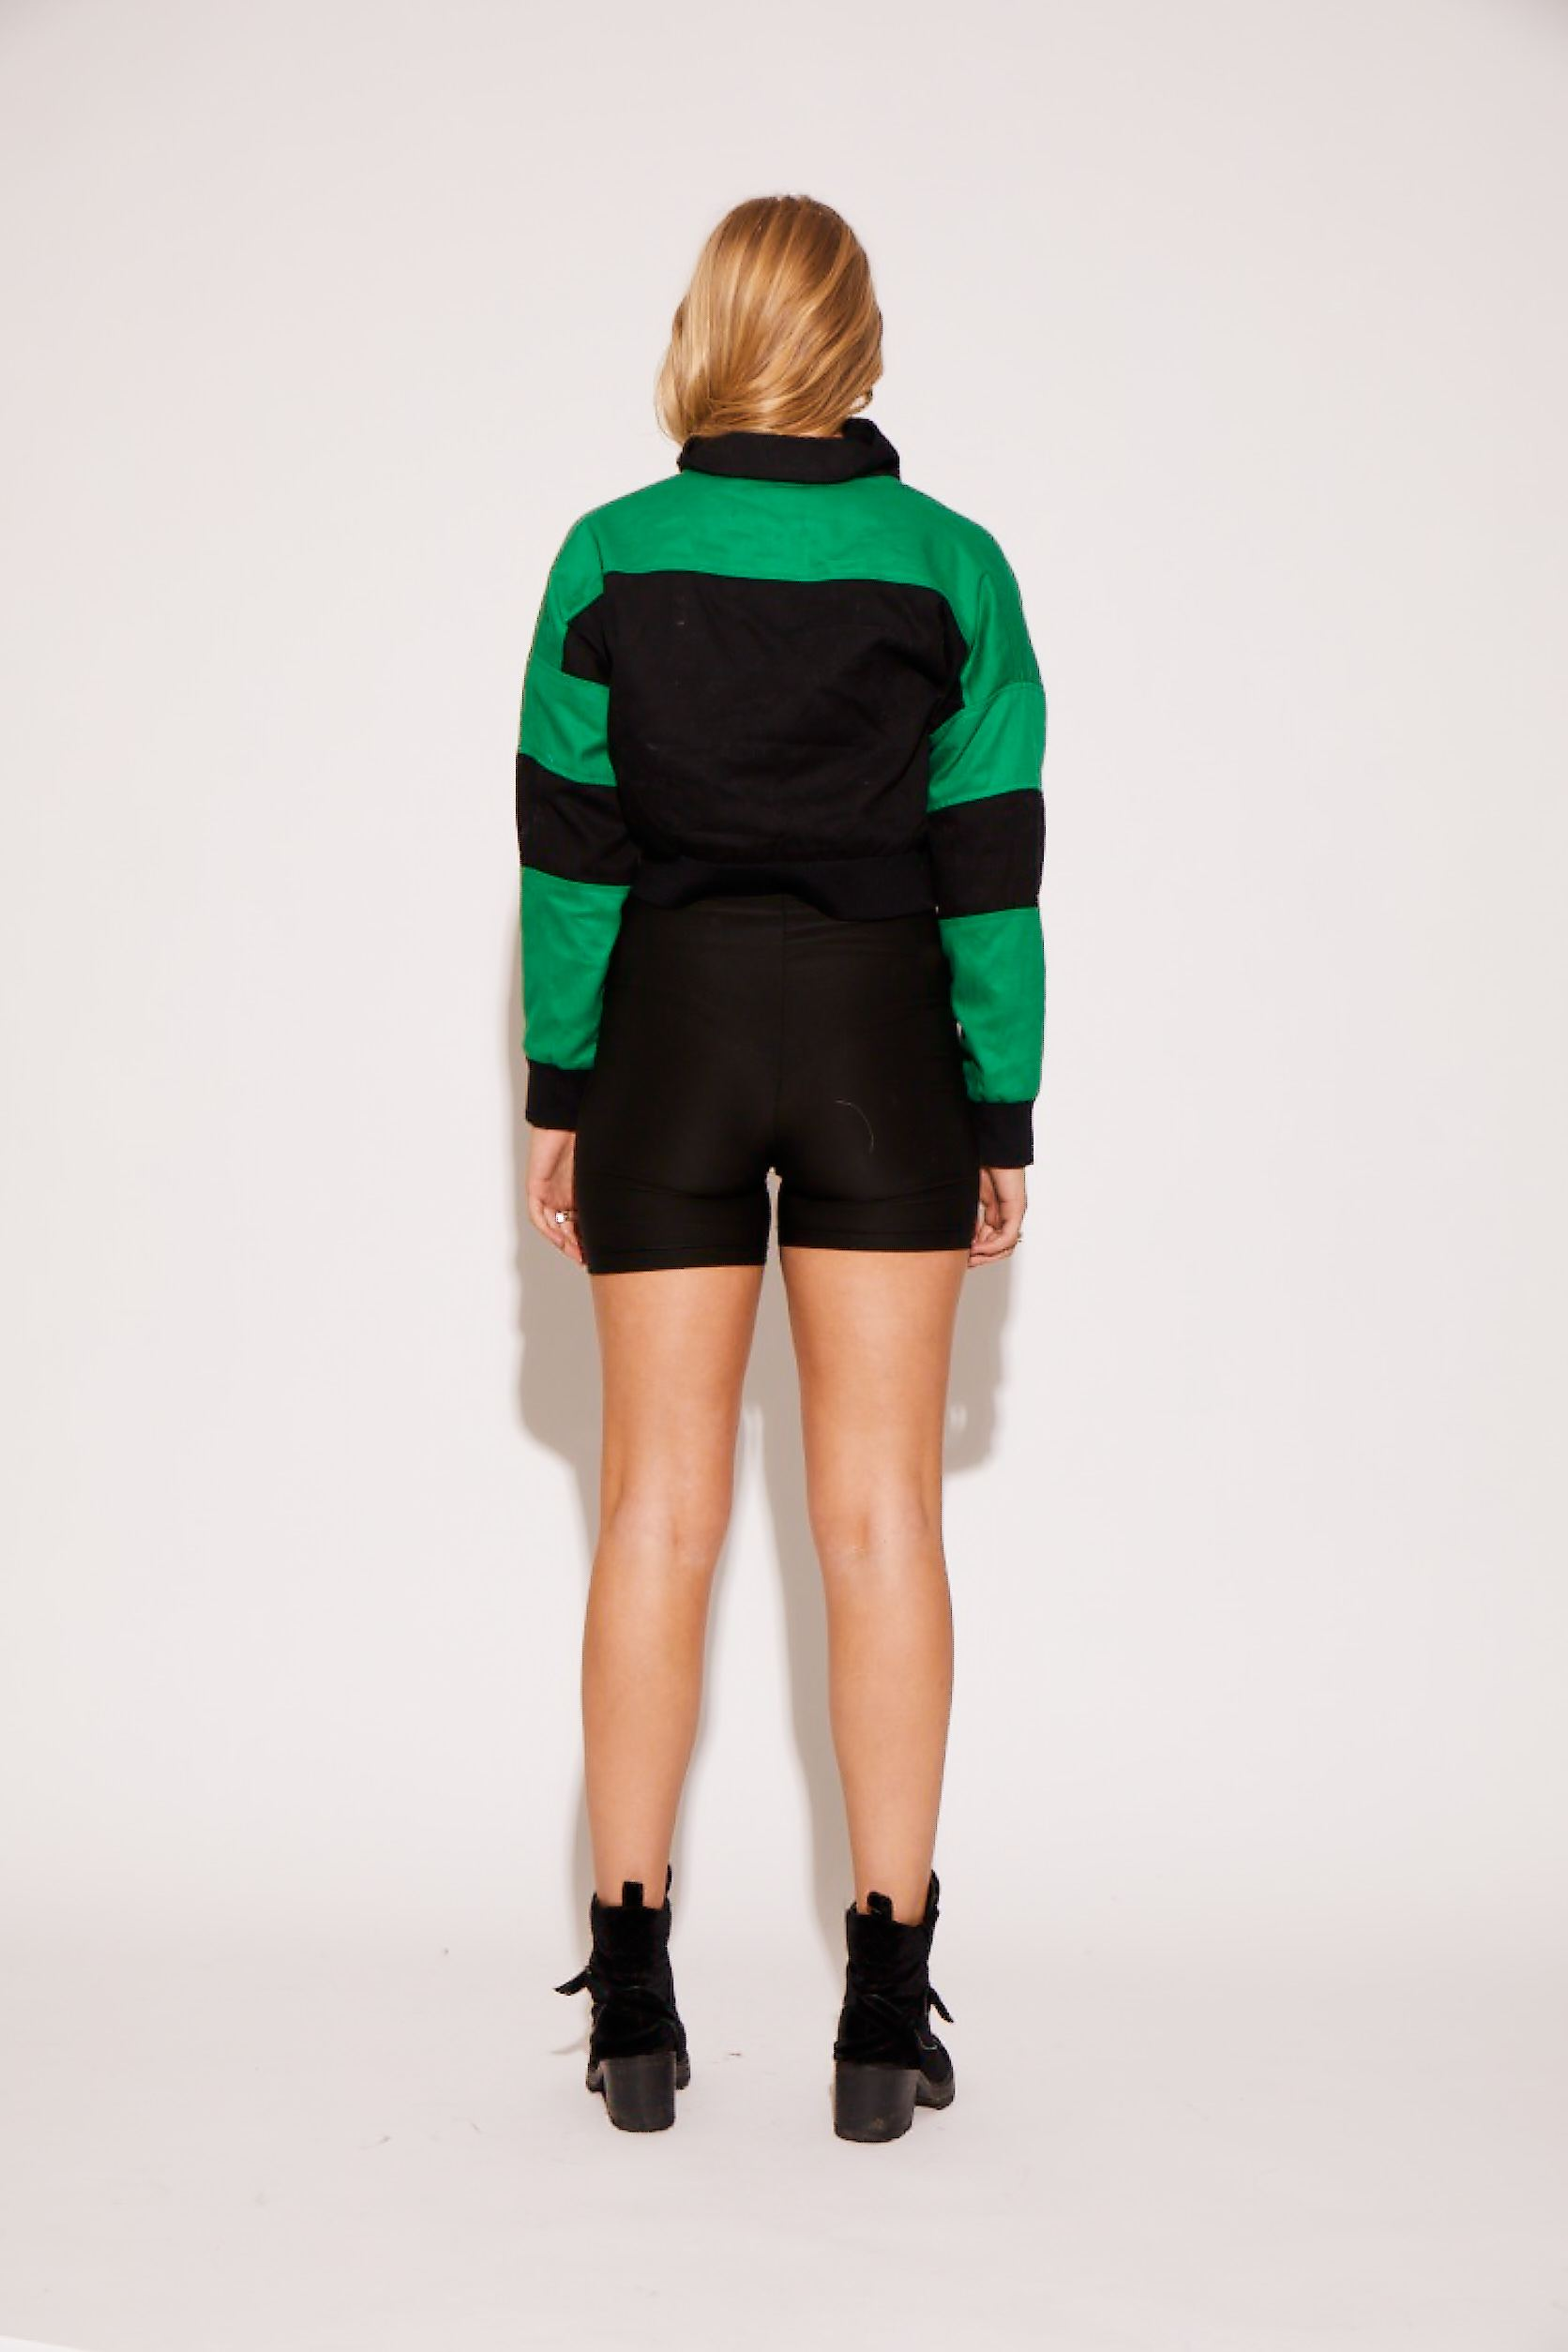 shaci-cropped-green-black-colorblock-denim-jean-jacket